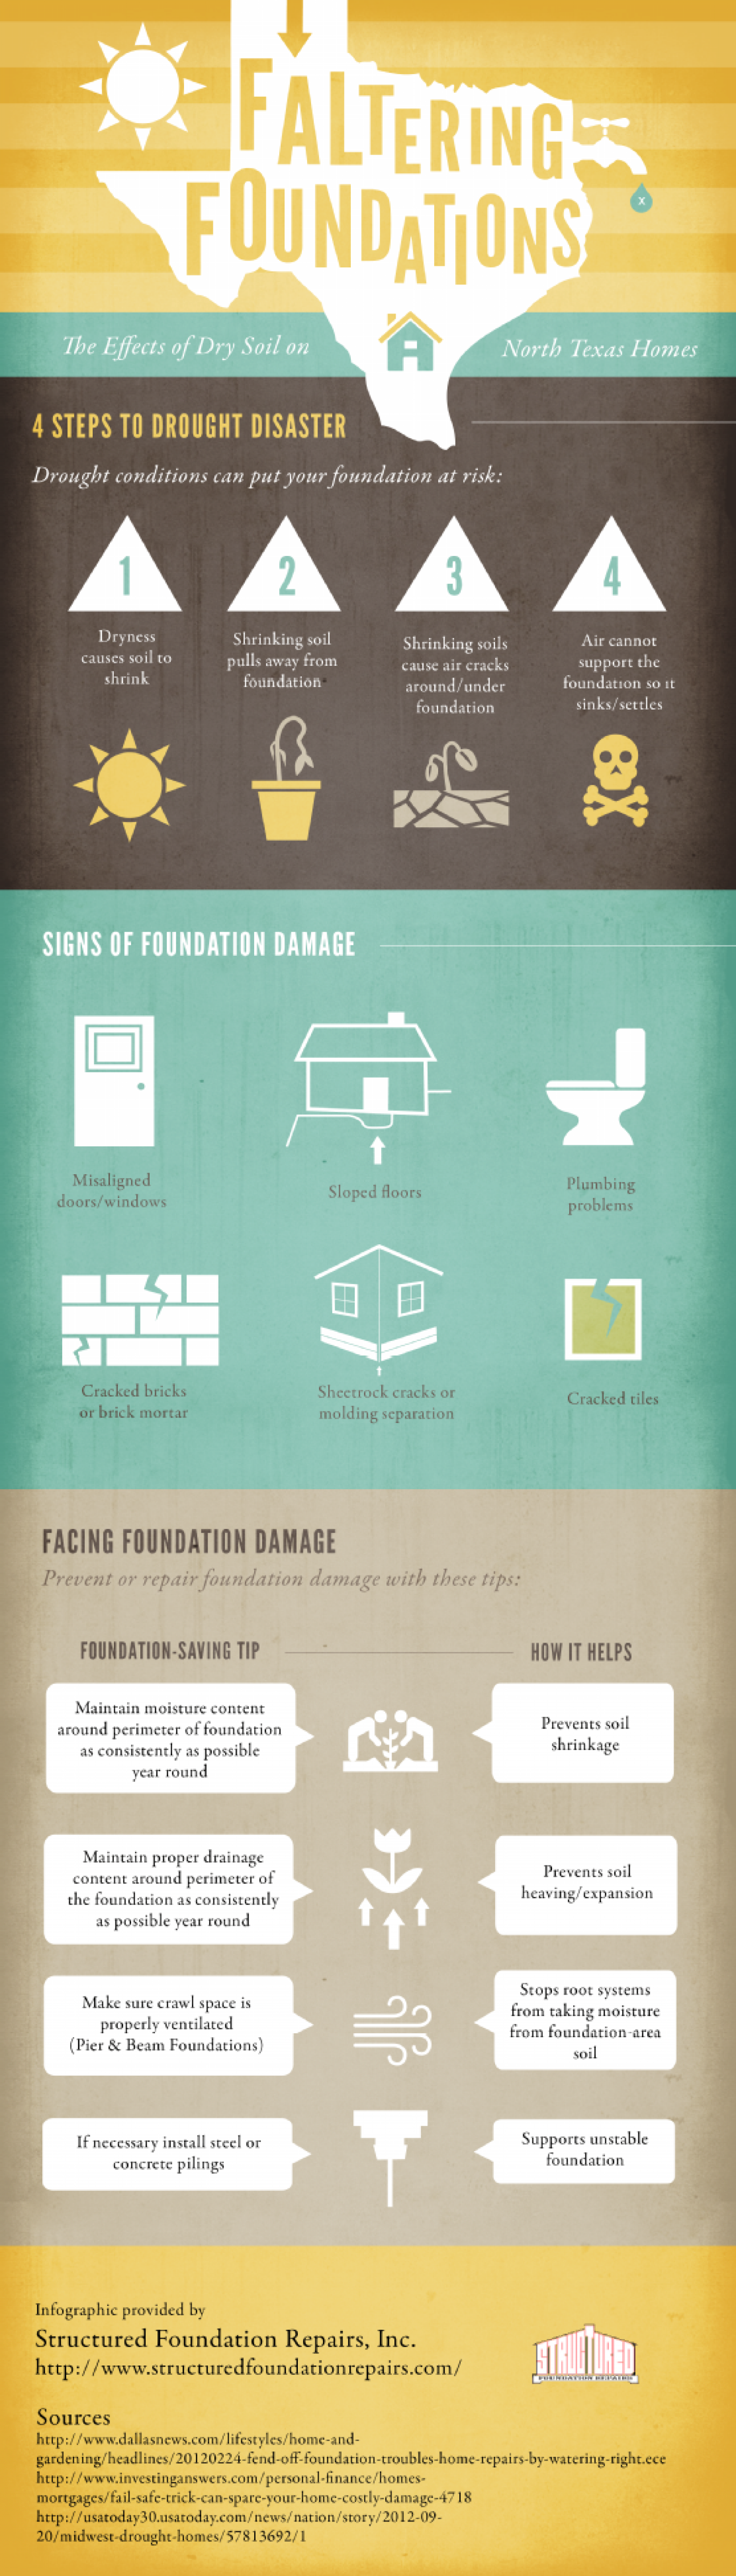 Faltering Foundations: The Effects of Dry Soil on North Texas Homes Infographic